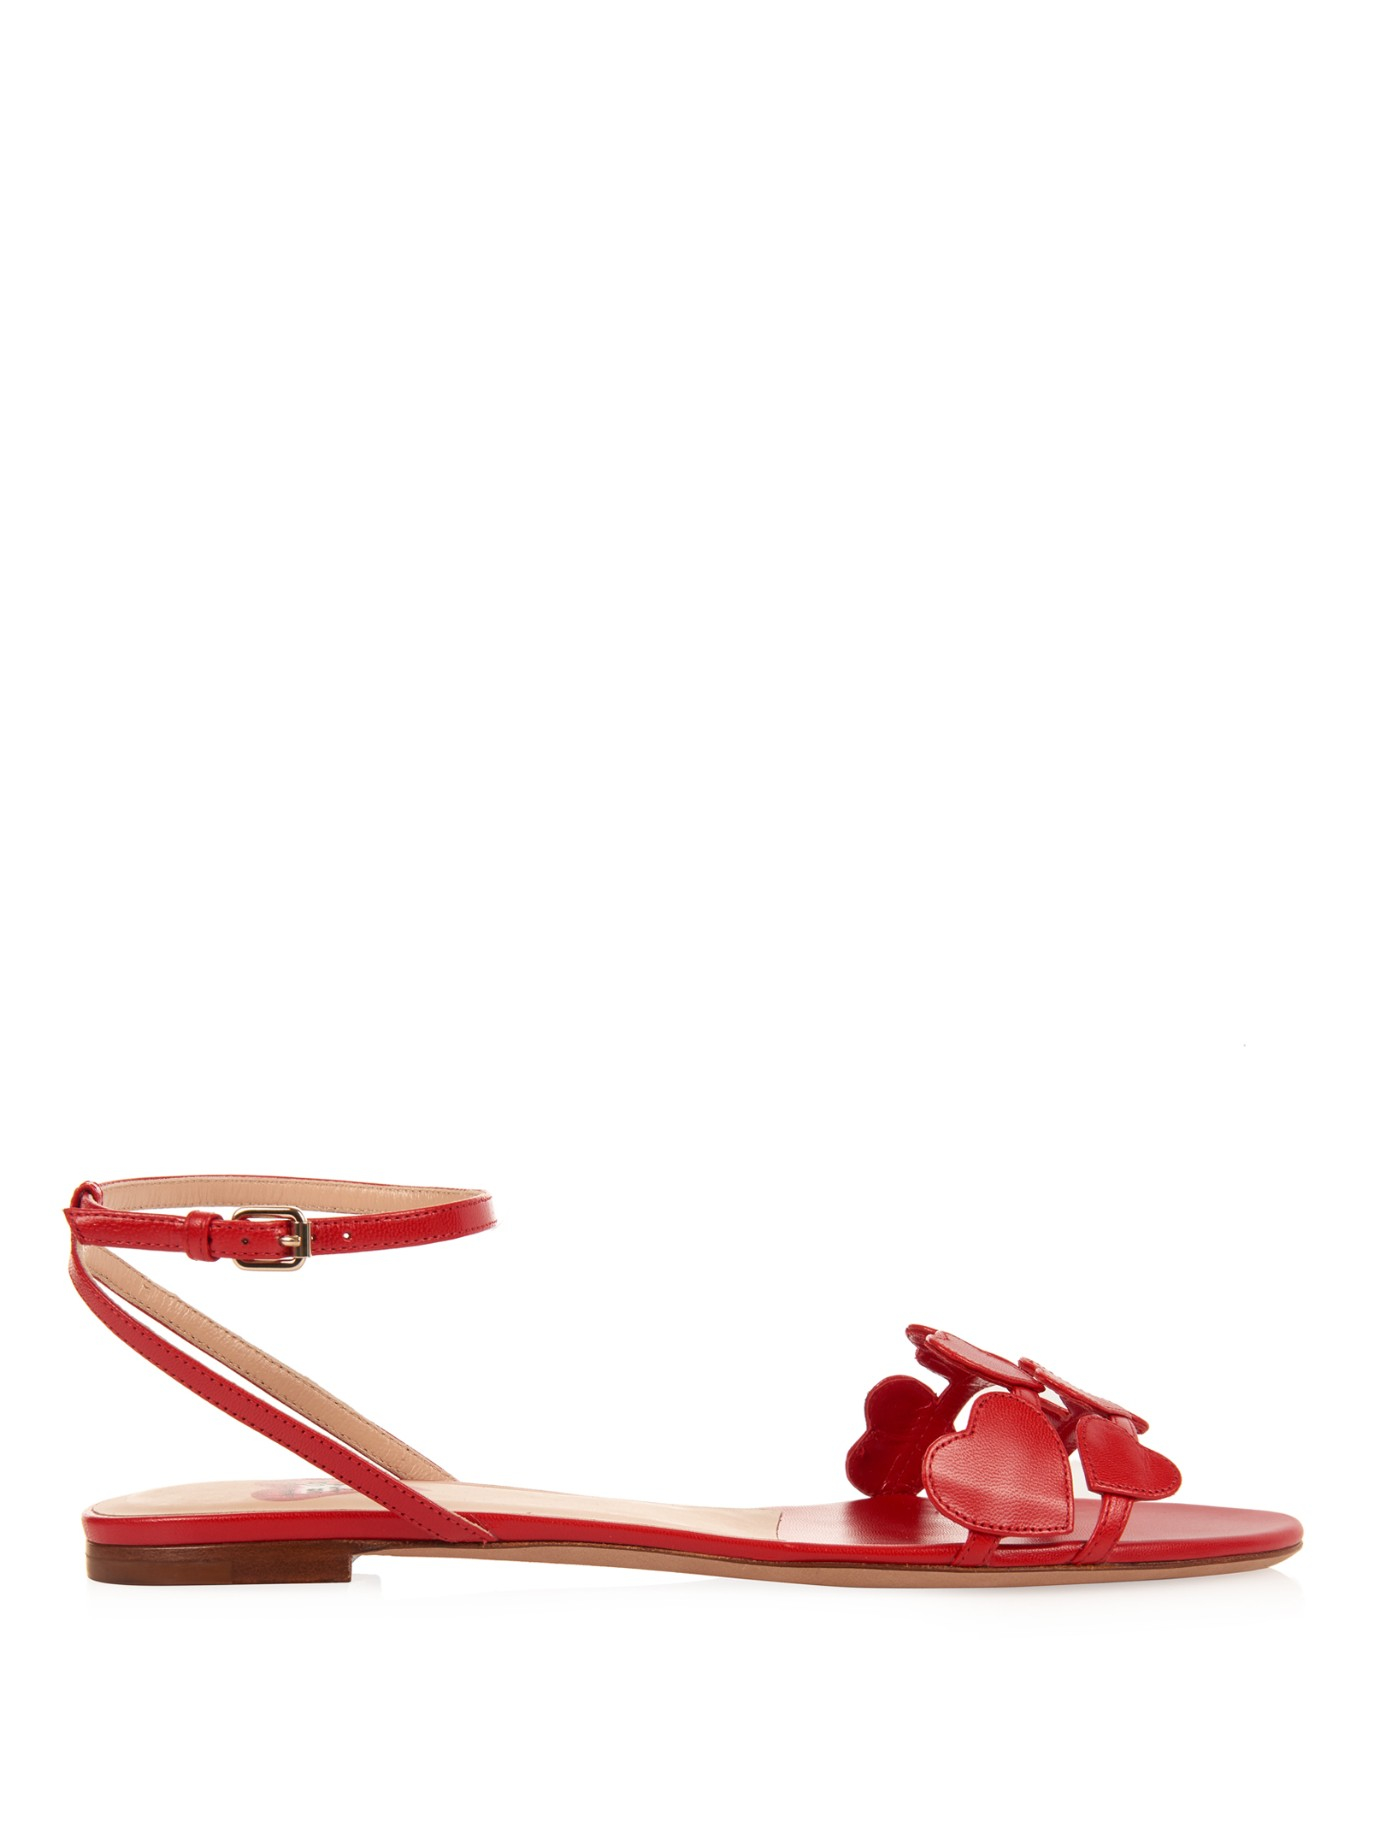 Valentino L Amour Leather Flat Sandals In Red Lyst